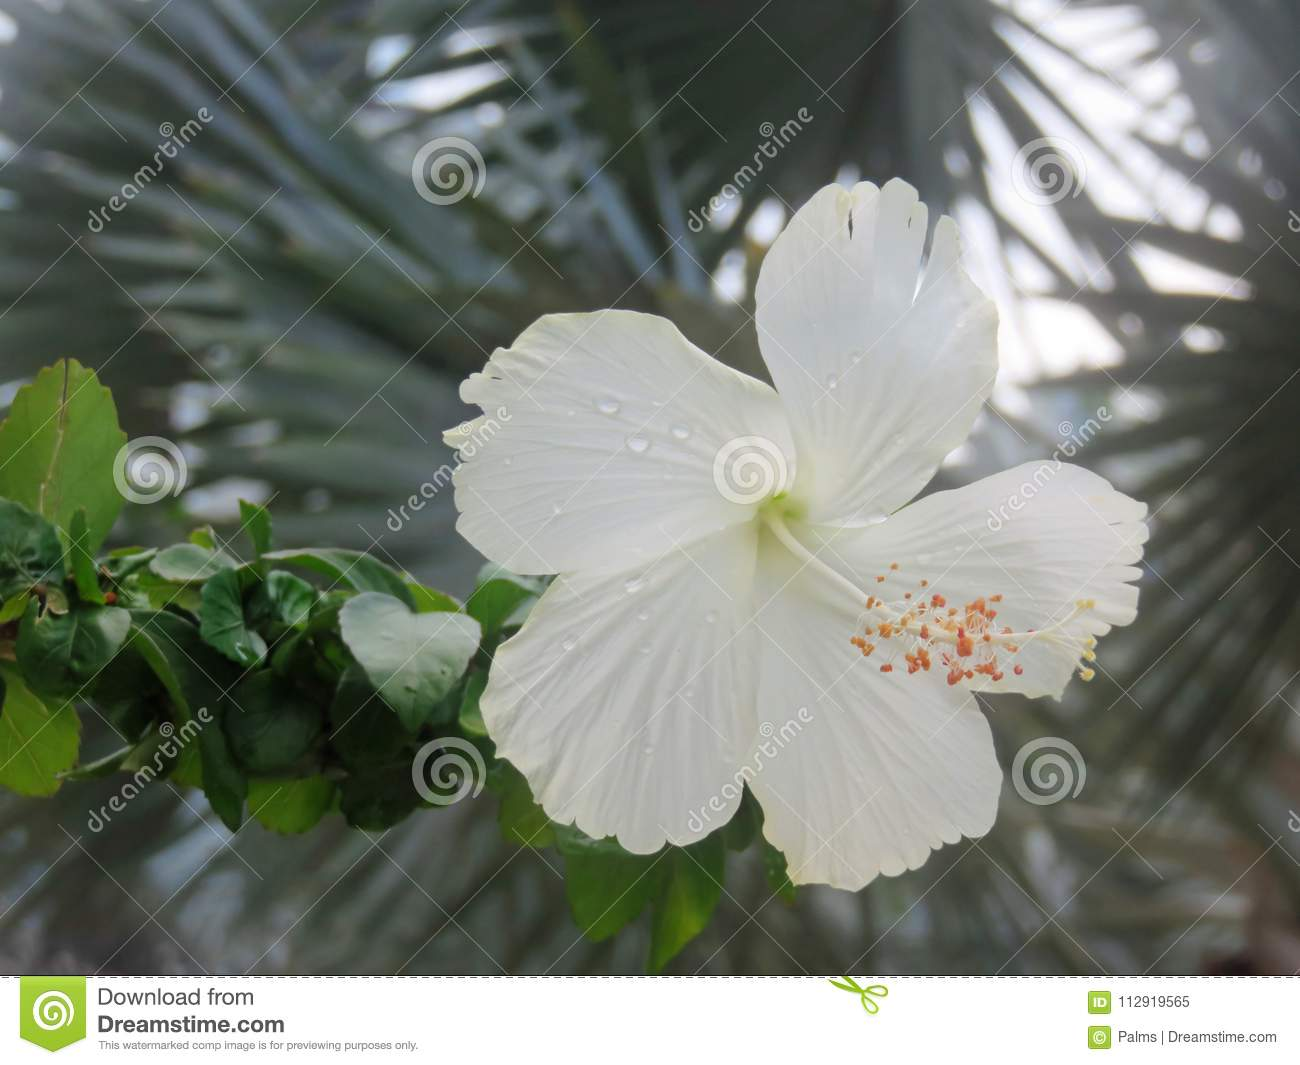 White hibiscus flower in tropical garden stock image image of asia very delicate pretty white hibiscus flower blooming in a tropical garden with fronds of palm trees in the background izmirmasajfo